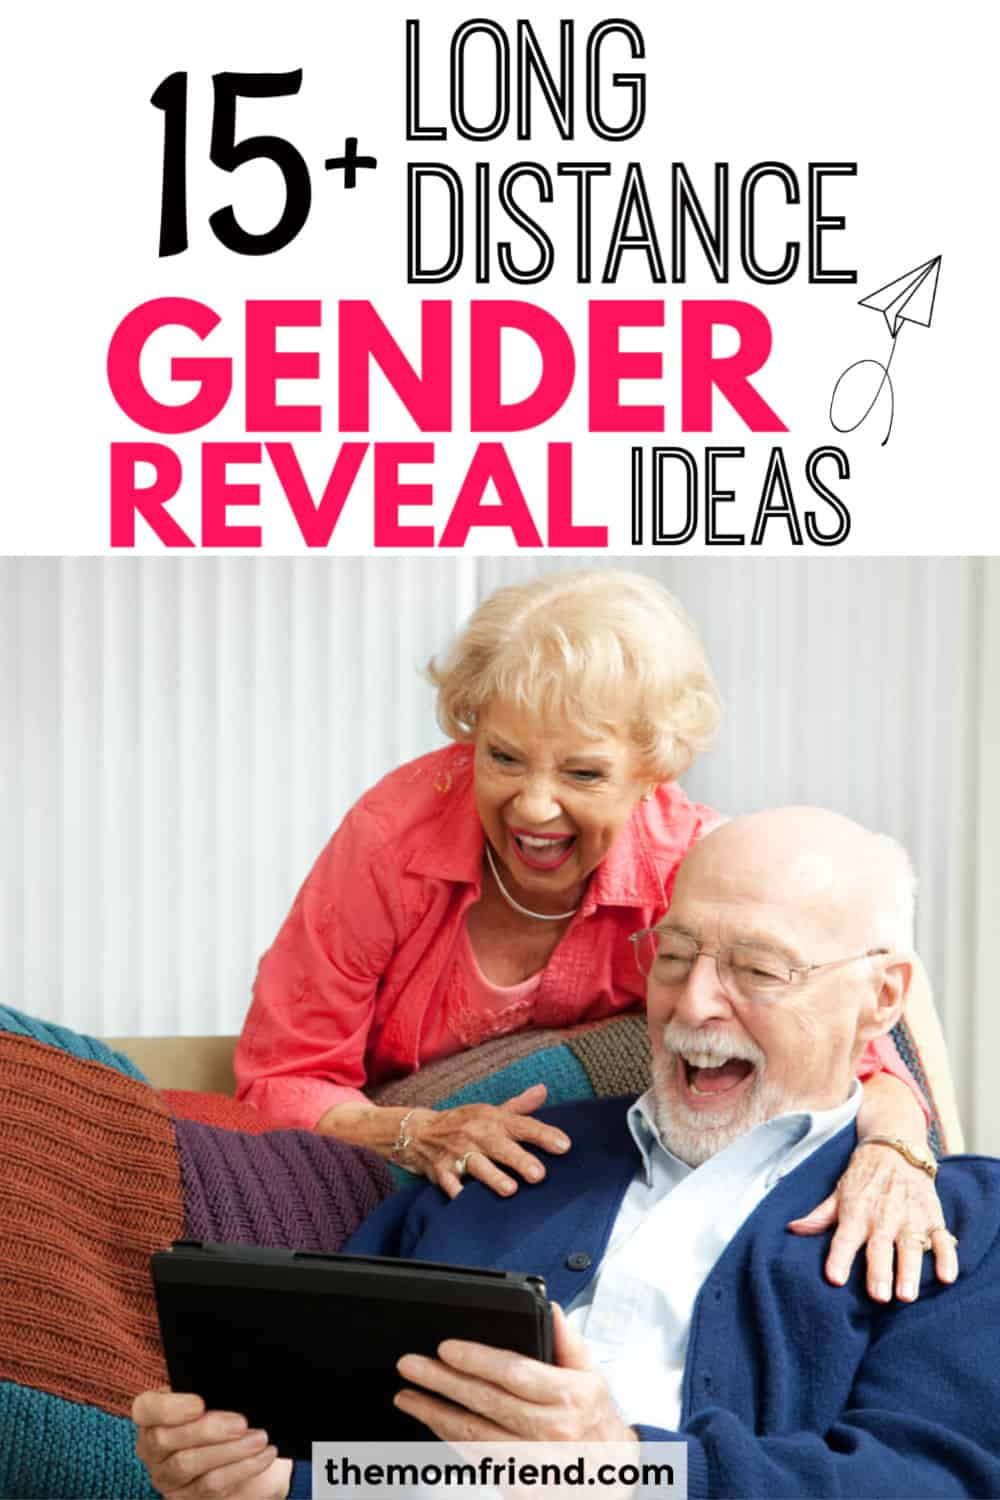 pinnable image for long distance gender reveal ideas